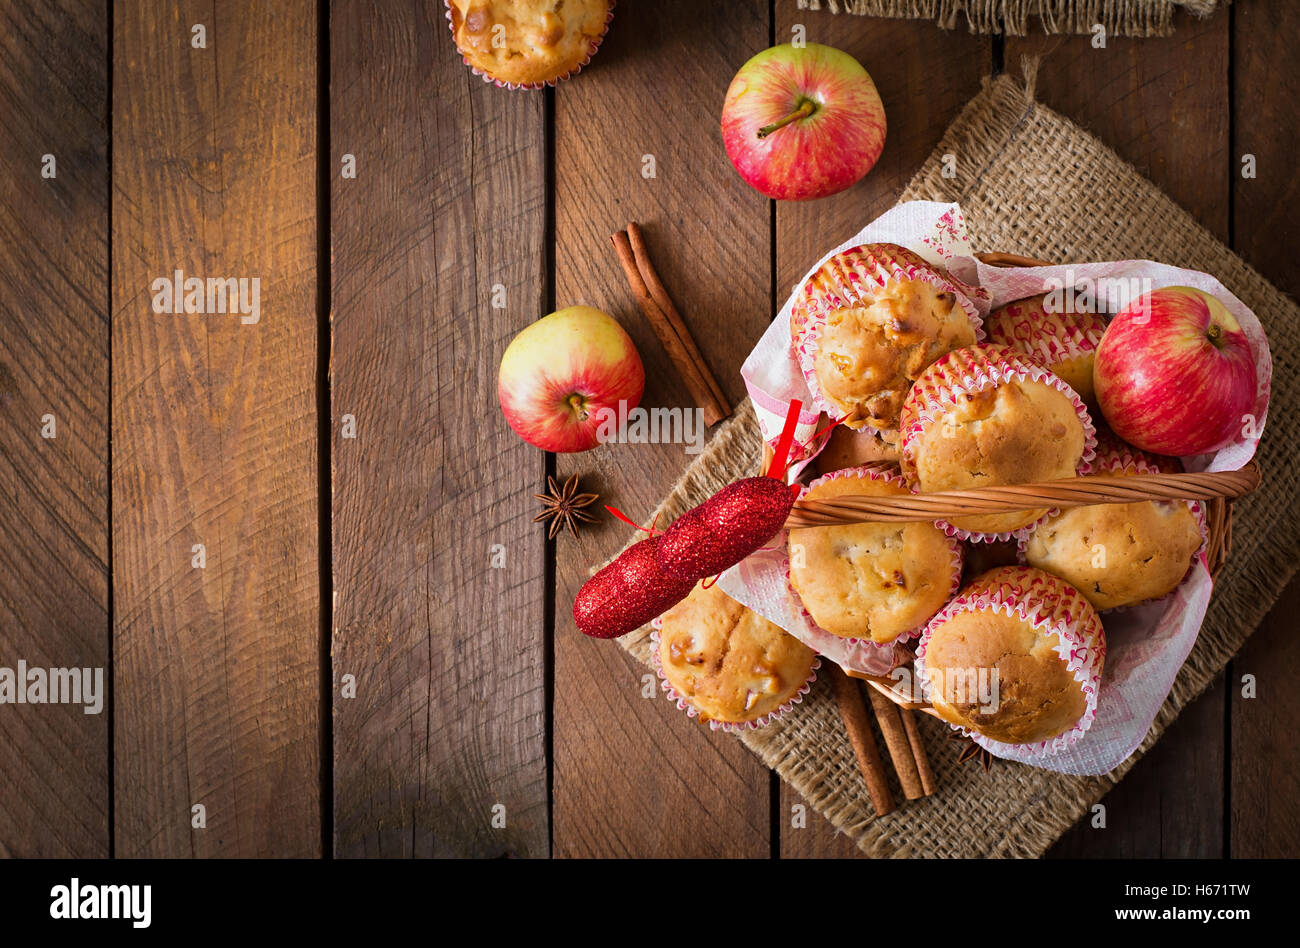 Tasty muffins with apple and cinnamon in basket on a wooden background. Top view - Stock Image